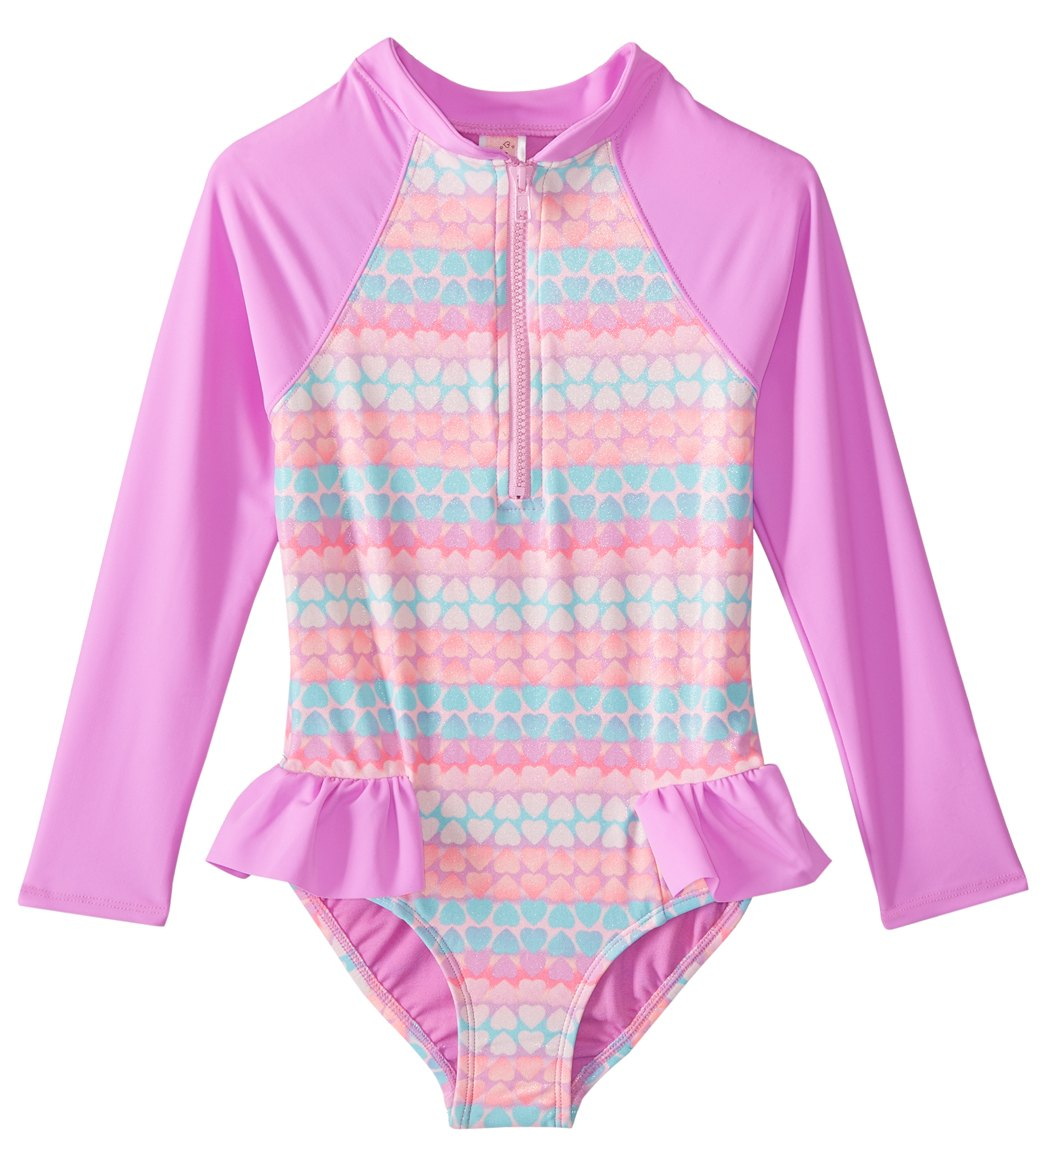 9cfd1546346 ... Girls' Hearts Galore Long Sleeve One Piece Swimsuit (Toddler, Little  Kid. Share